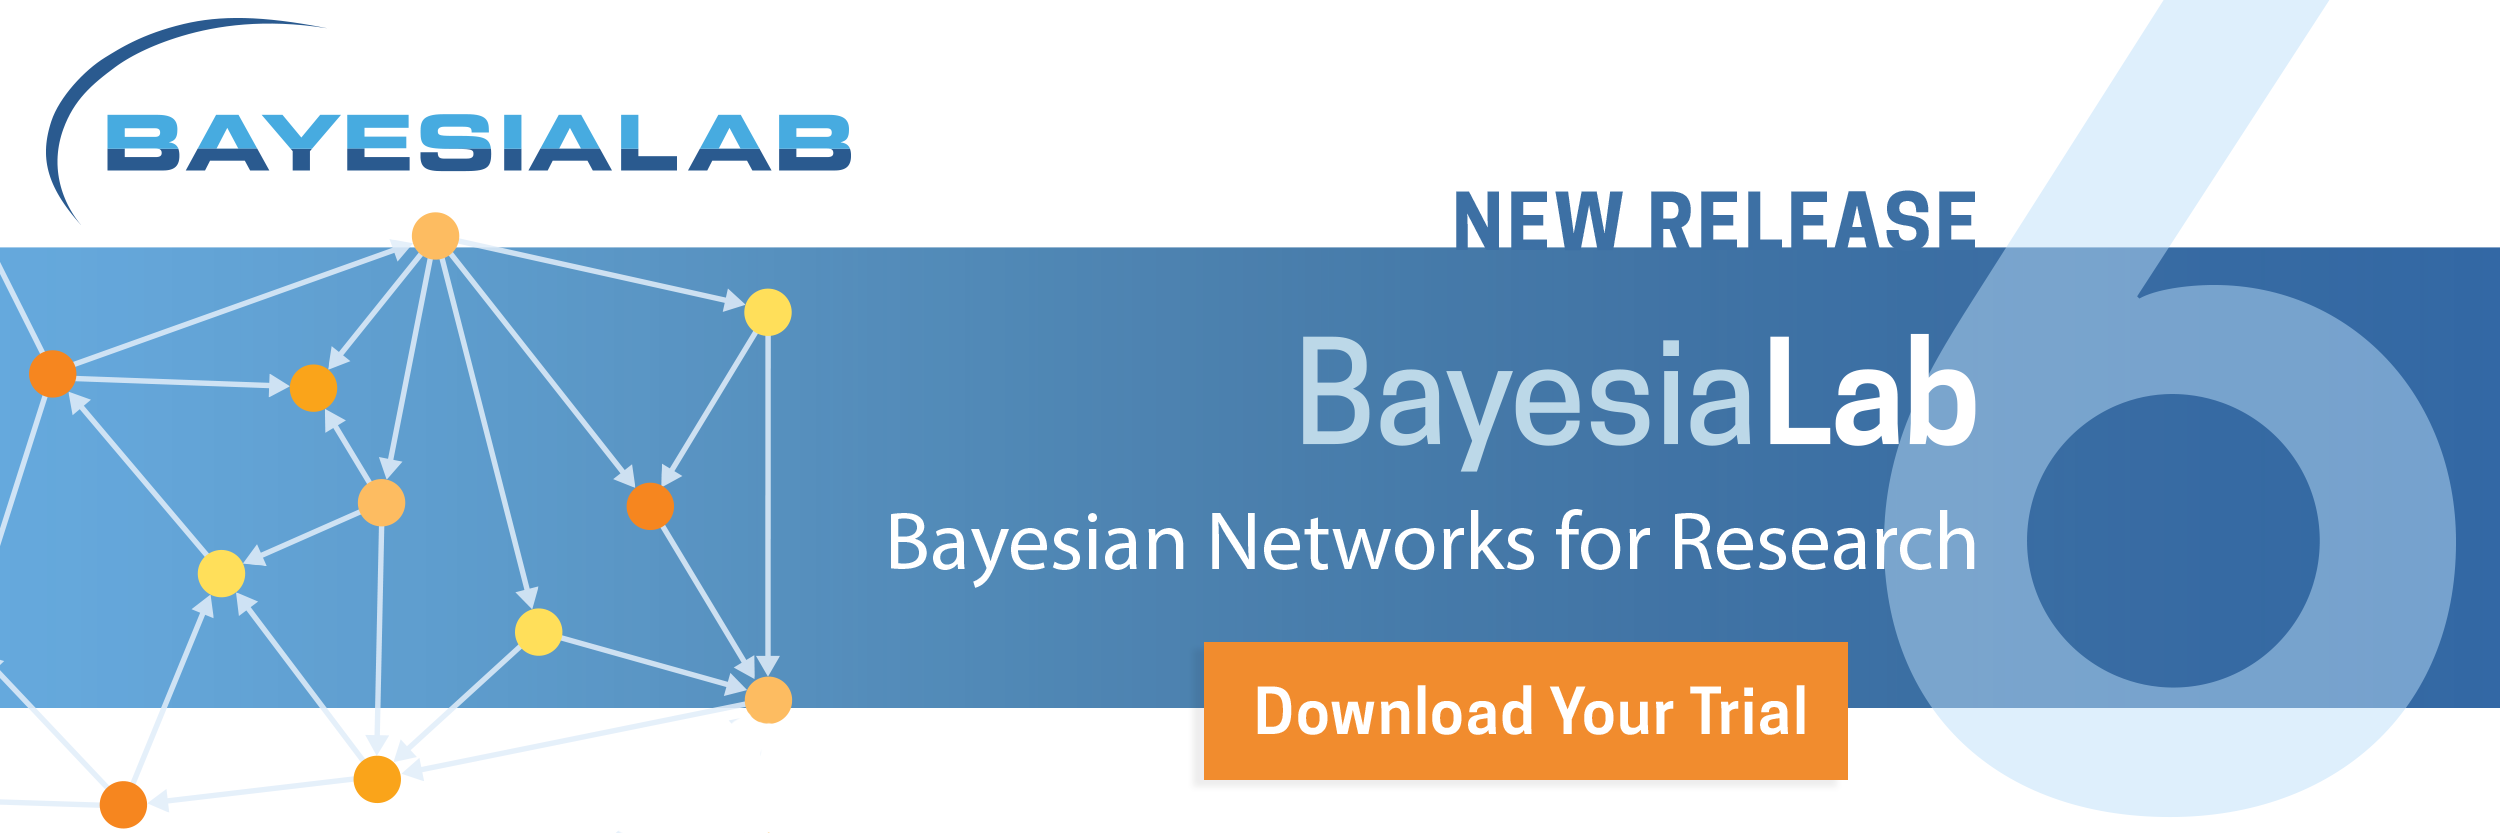 New Release: BayesiaLab 6